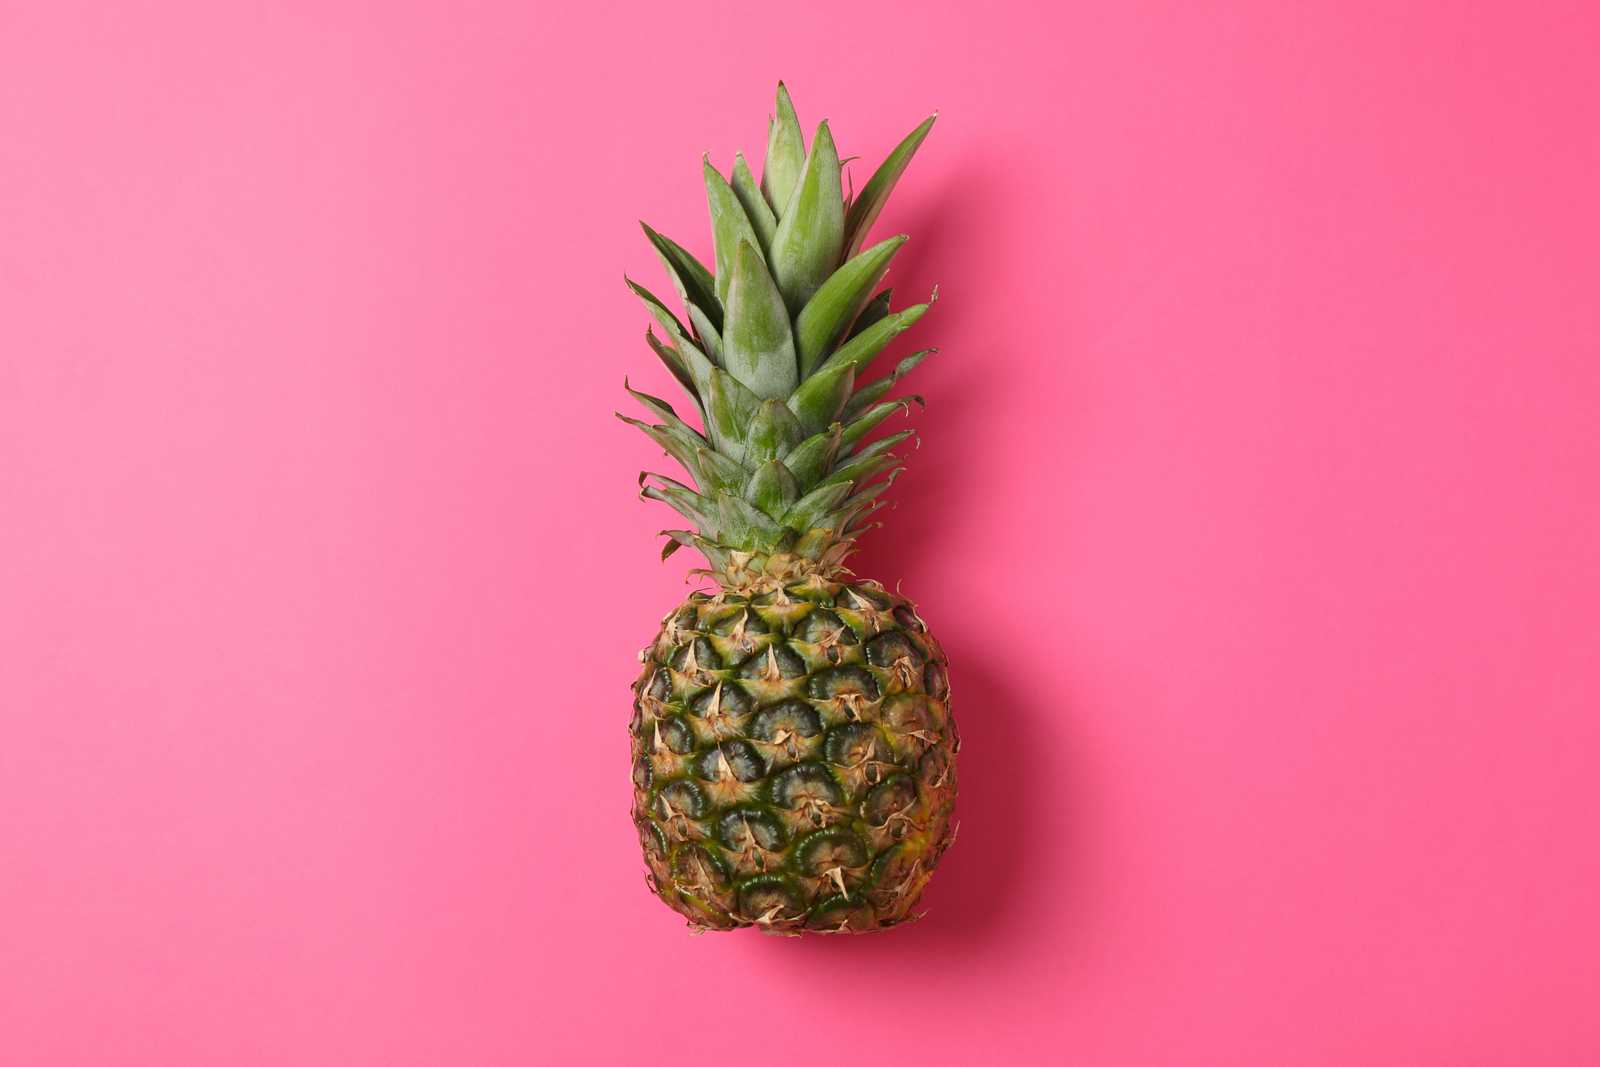 1-pineapple-pink-background-space-text-juicy-fruit.jpg